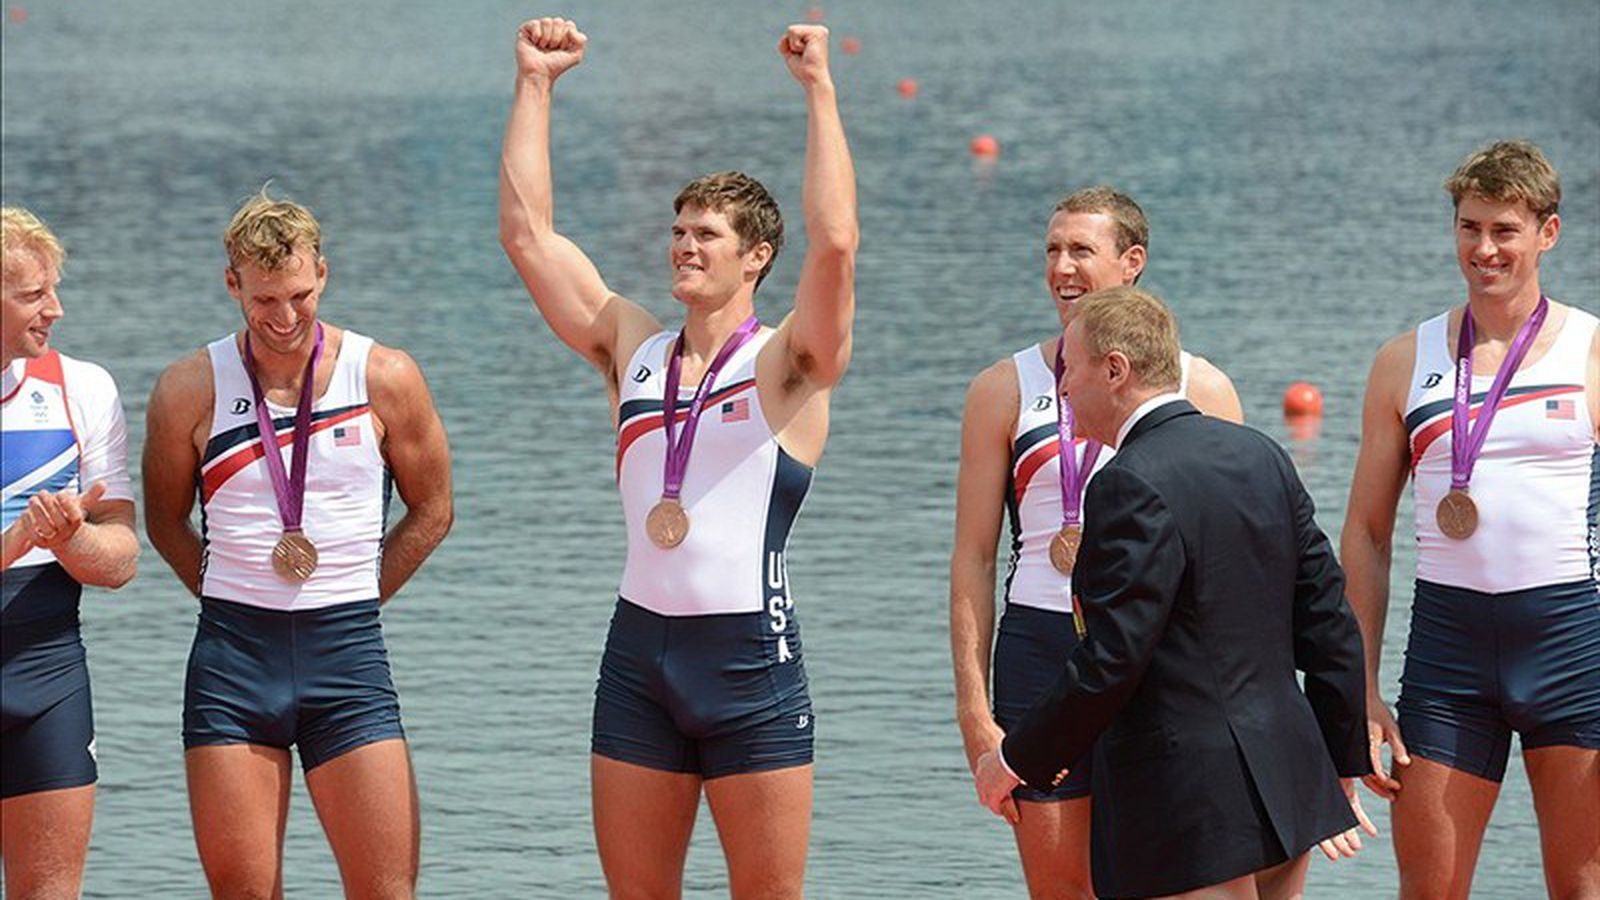 Rowing Coach Tells How An Olympic Crotch Shot Obscures